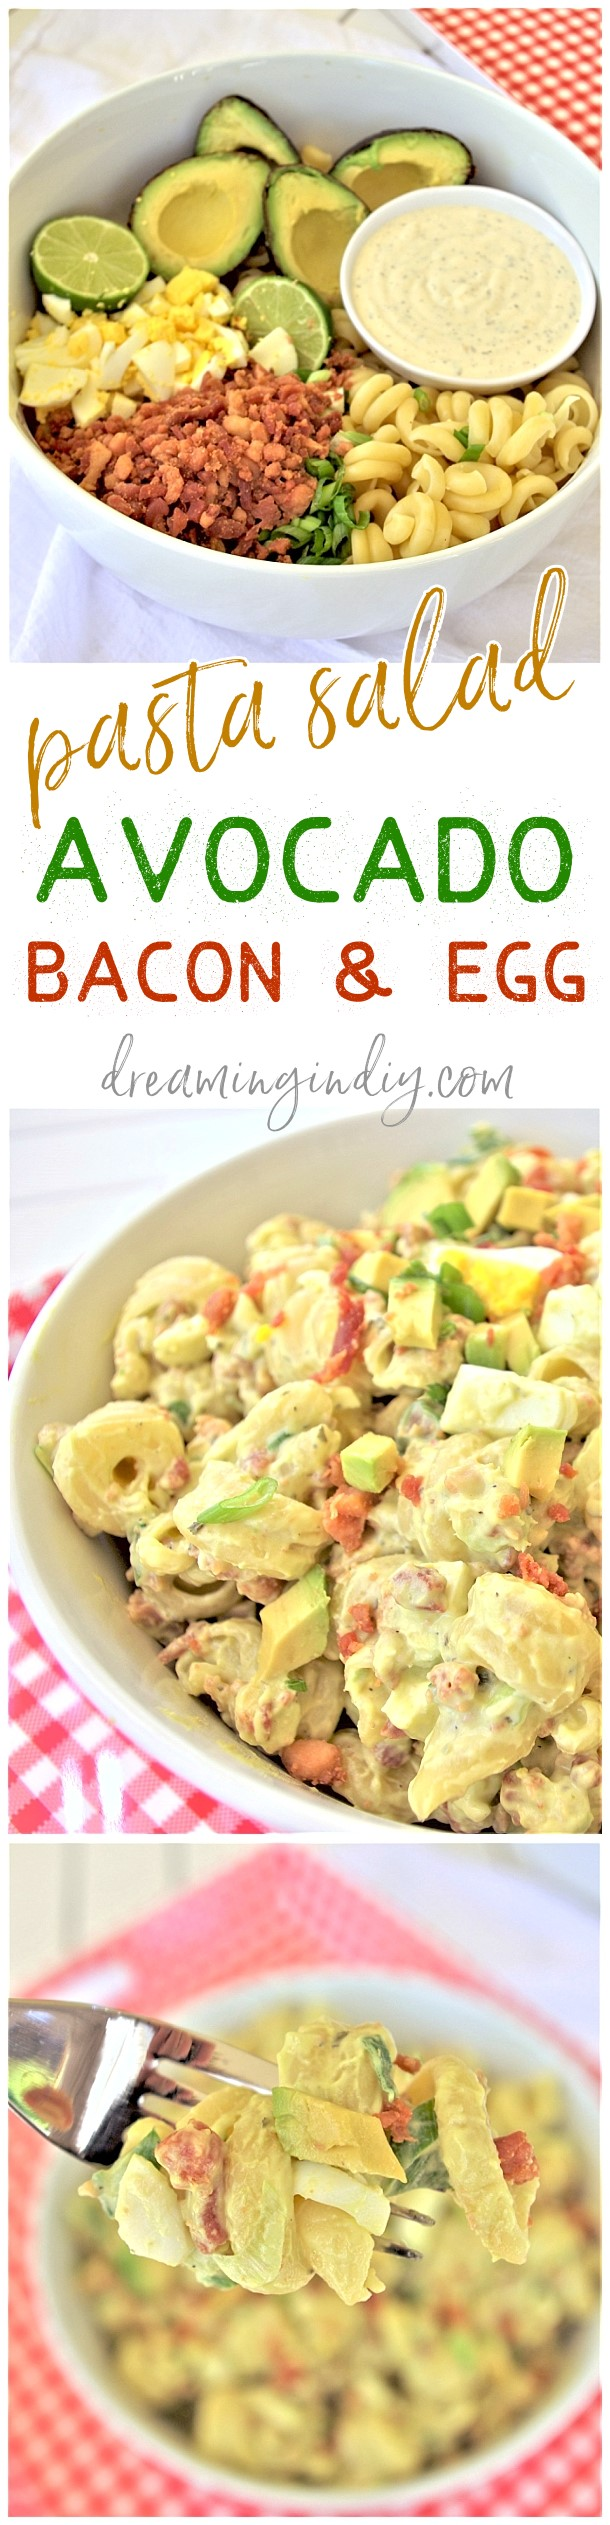 Avocado Egg and Bacon Pasta Salad Side Dish Recipe via Dreaming in DIY - This is the perfect easy and delicious pasta salad side dish. Bring it to 4th of July holiday celebrations, summer cookouts, fall tailgating lunch spreads, potlucks and backyard dinner parties! It tastes amazing immediately and even better after a few hours in the fridge! #pastasaladrecipes #pastasalads #pastasalad #easypastasalad #potluckrecipes #potluck #partyfood #4thofJuly #picnicfood #sidedishrecipes #easysidedishes #cookoutfood #barbecuefood #blockparty